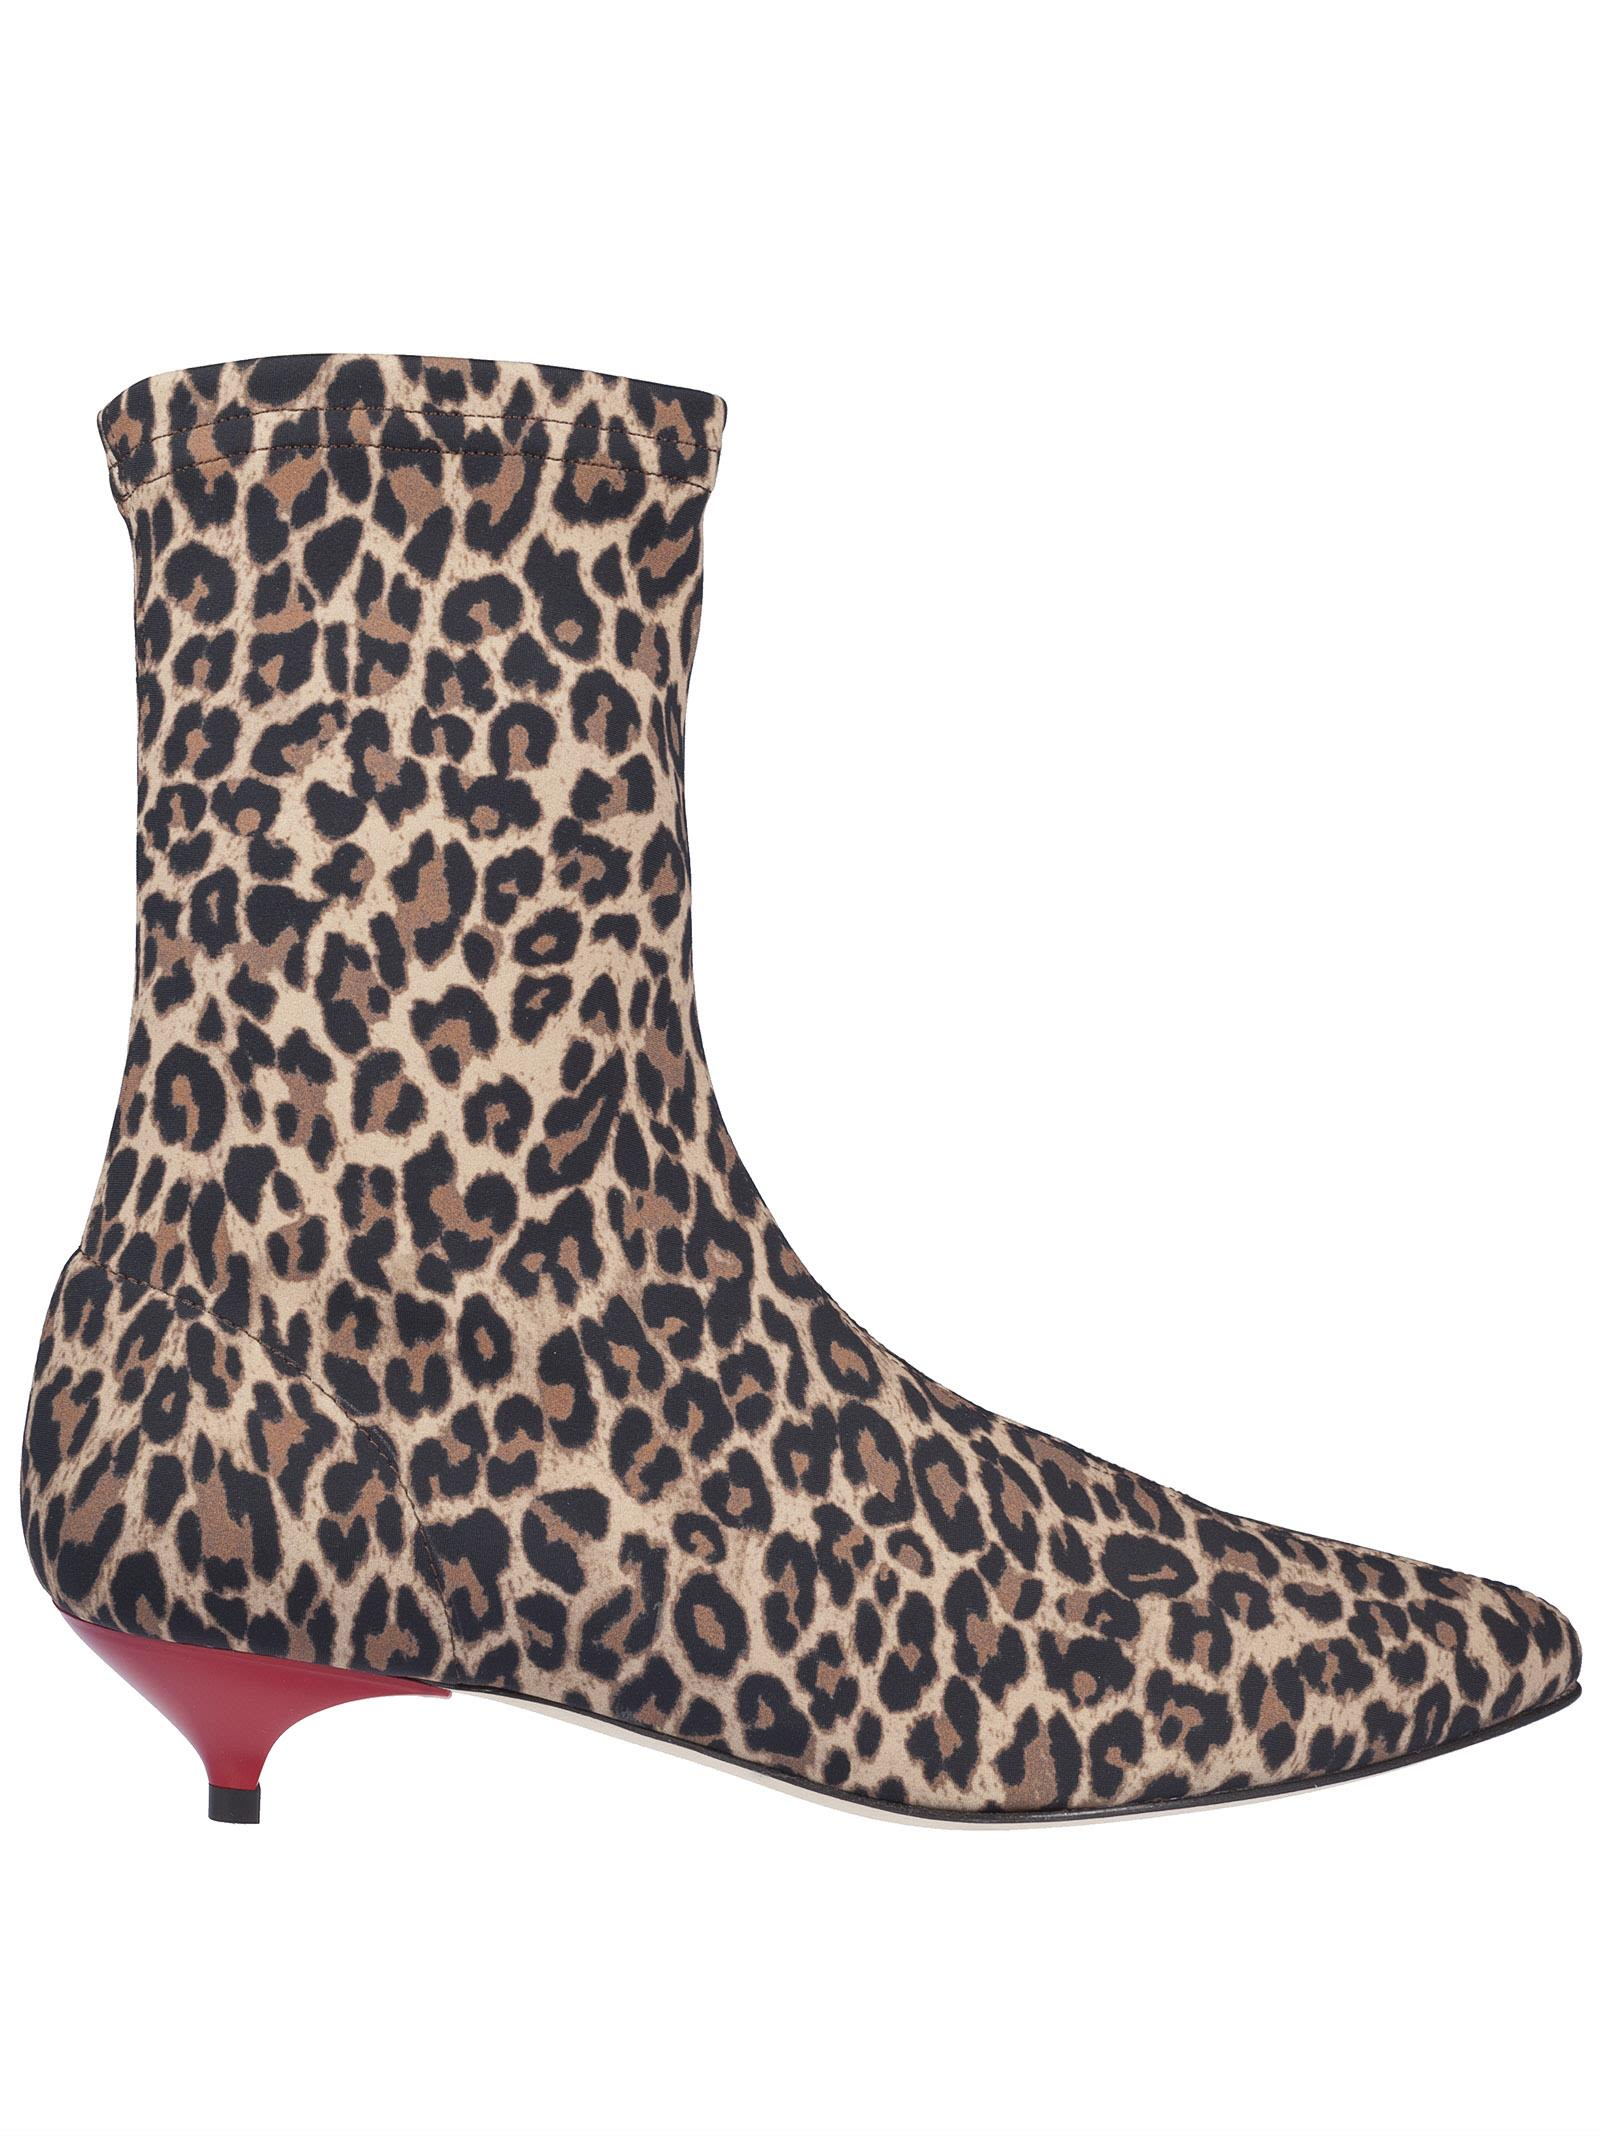 Gia Couture GIA COUTURE LEOPARD ANKLE BOOTS